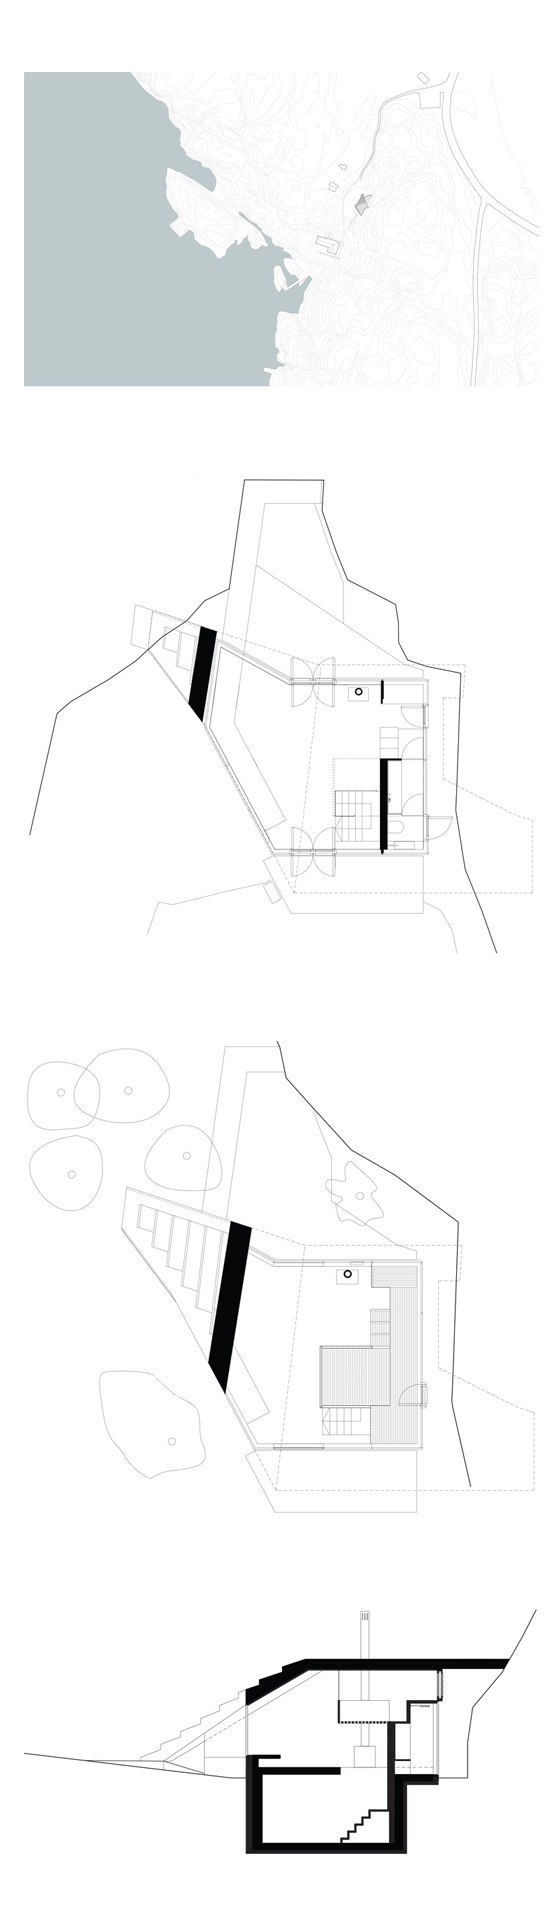 Knapphullet by Lund Hagem Architects | Detached houses